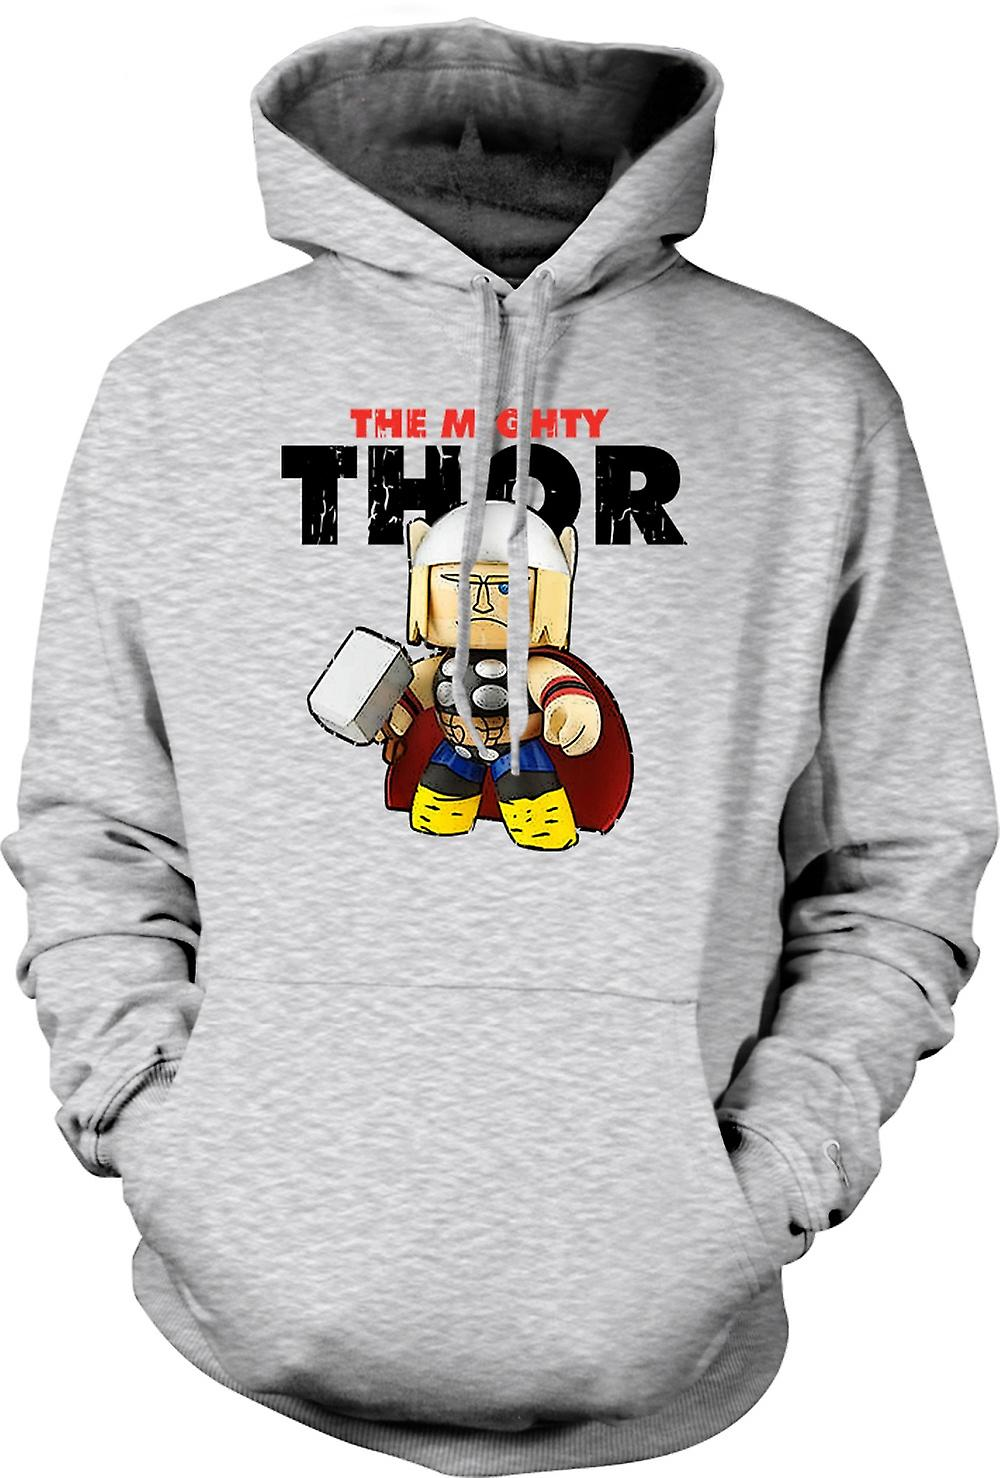 Mens Hoodie - The Mighty Thor Cute